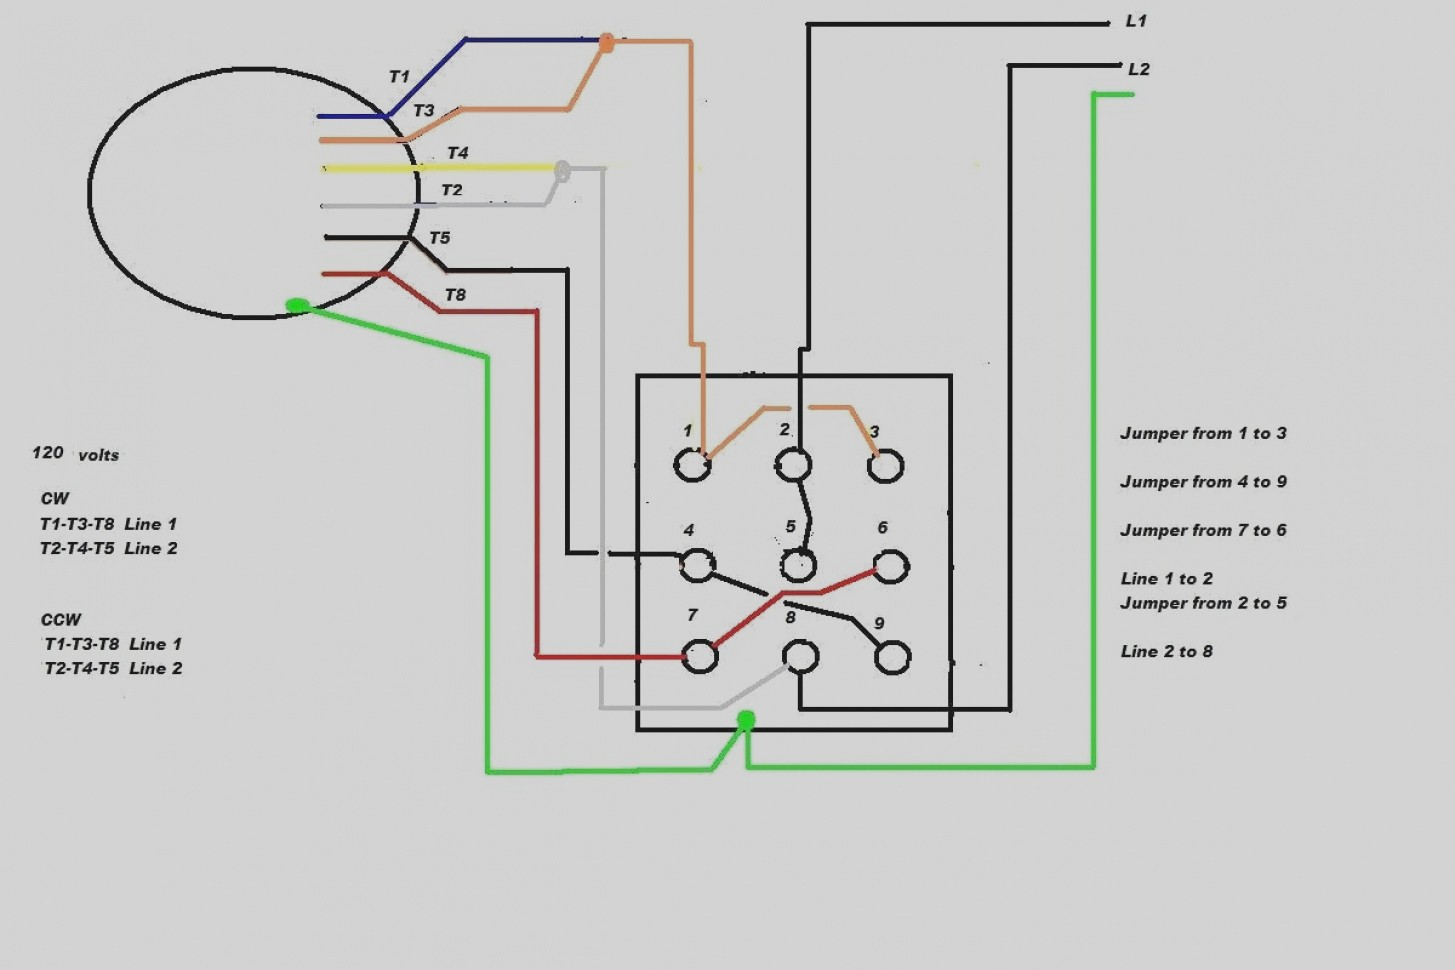 7232 220 Volt Air Compressor Pressure Switch Wiring Diagram | Wiring  ResourcesWiring Resources